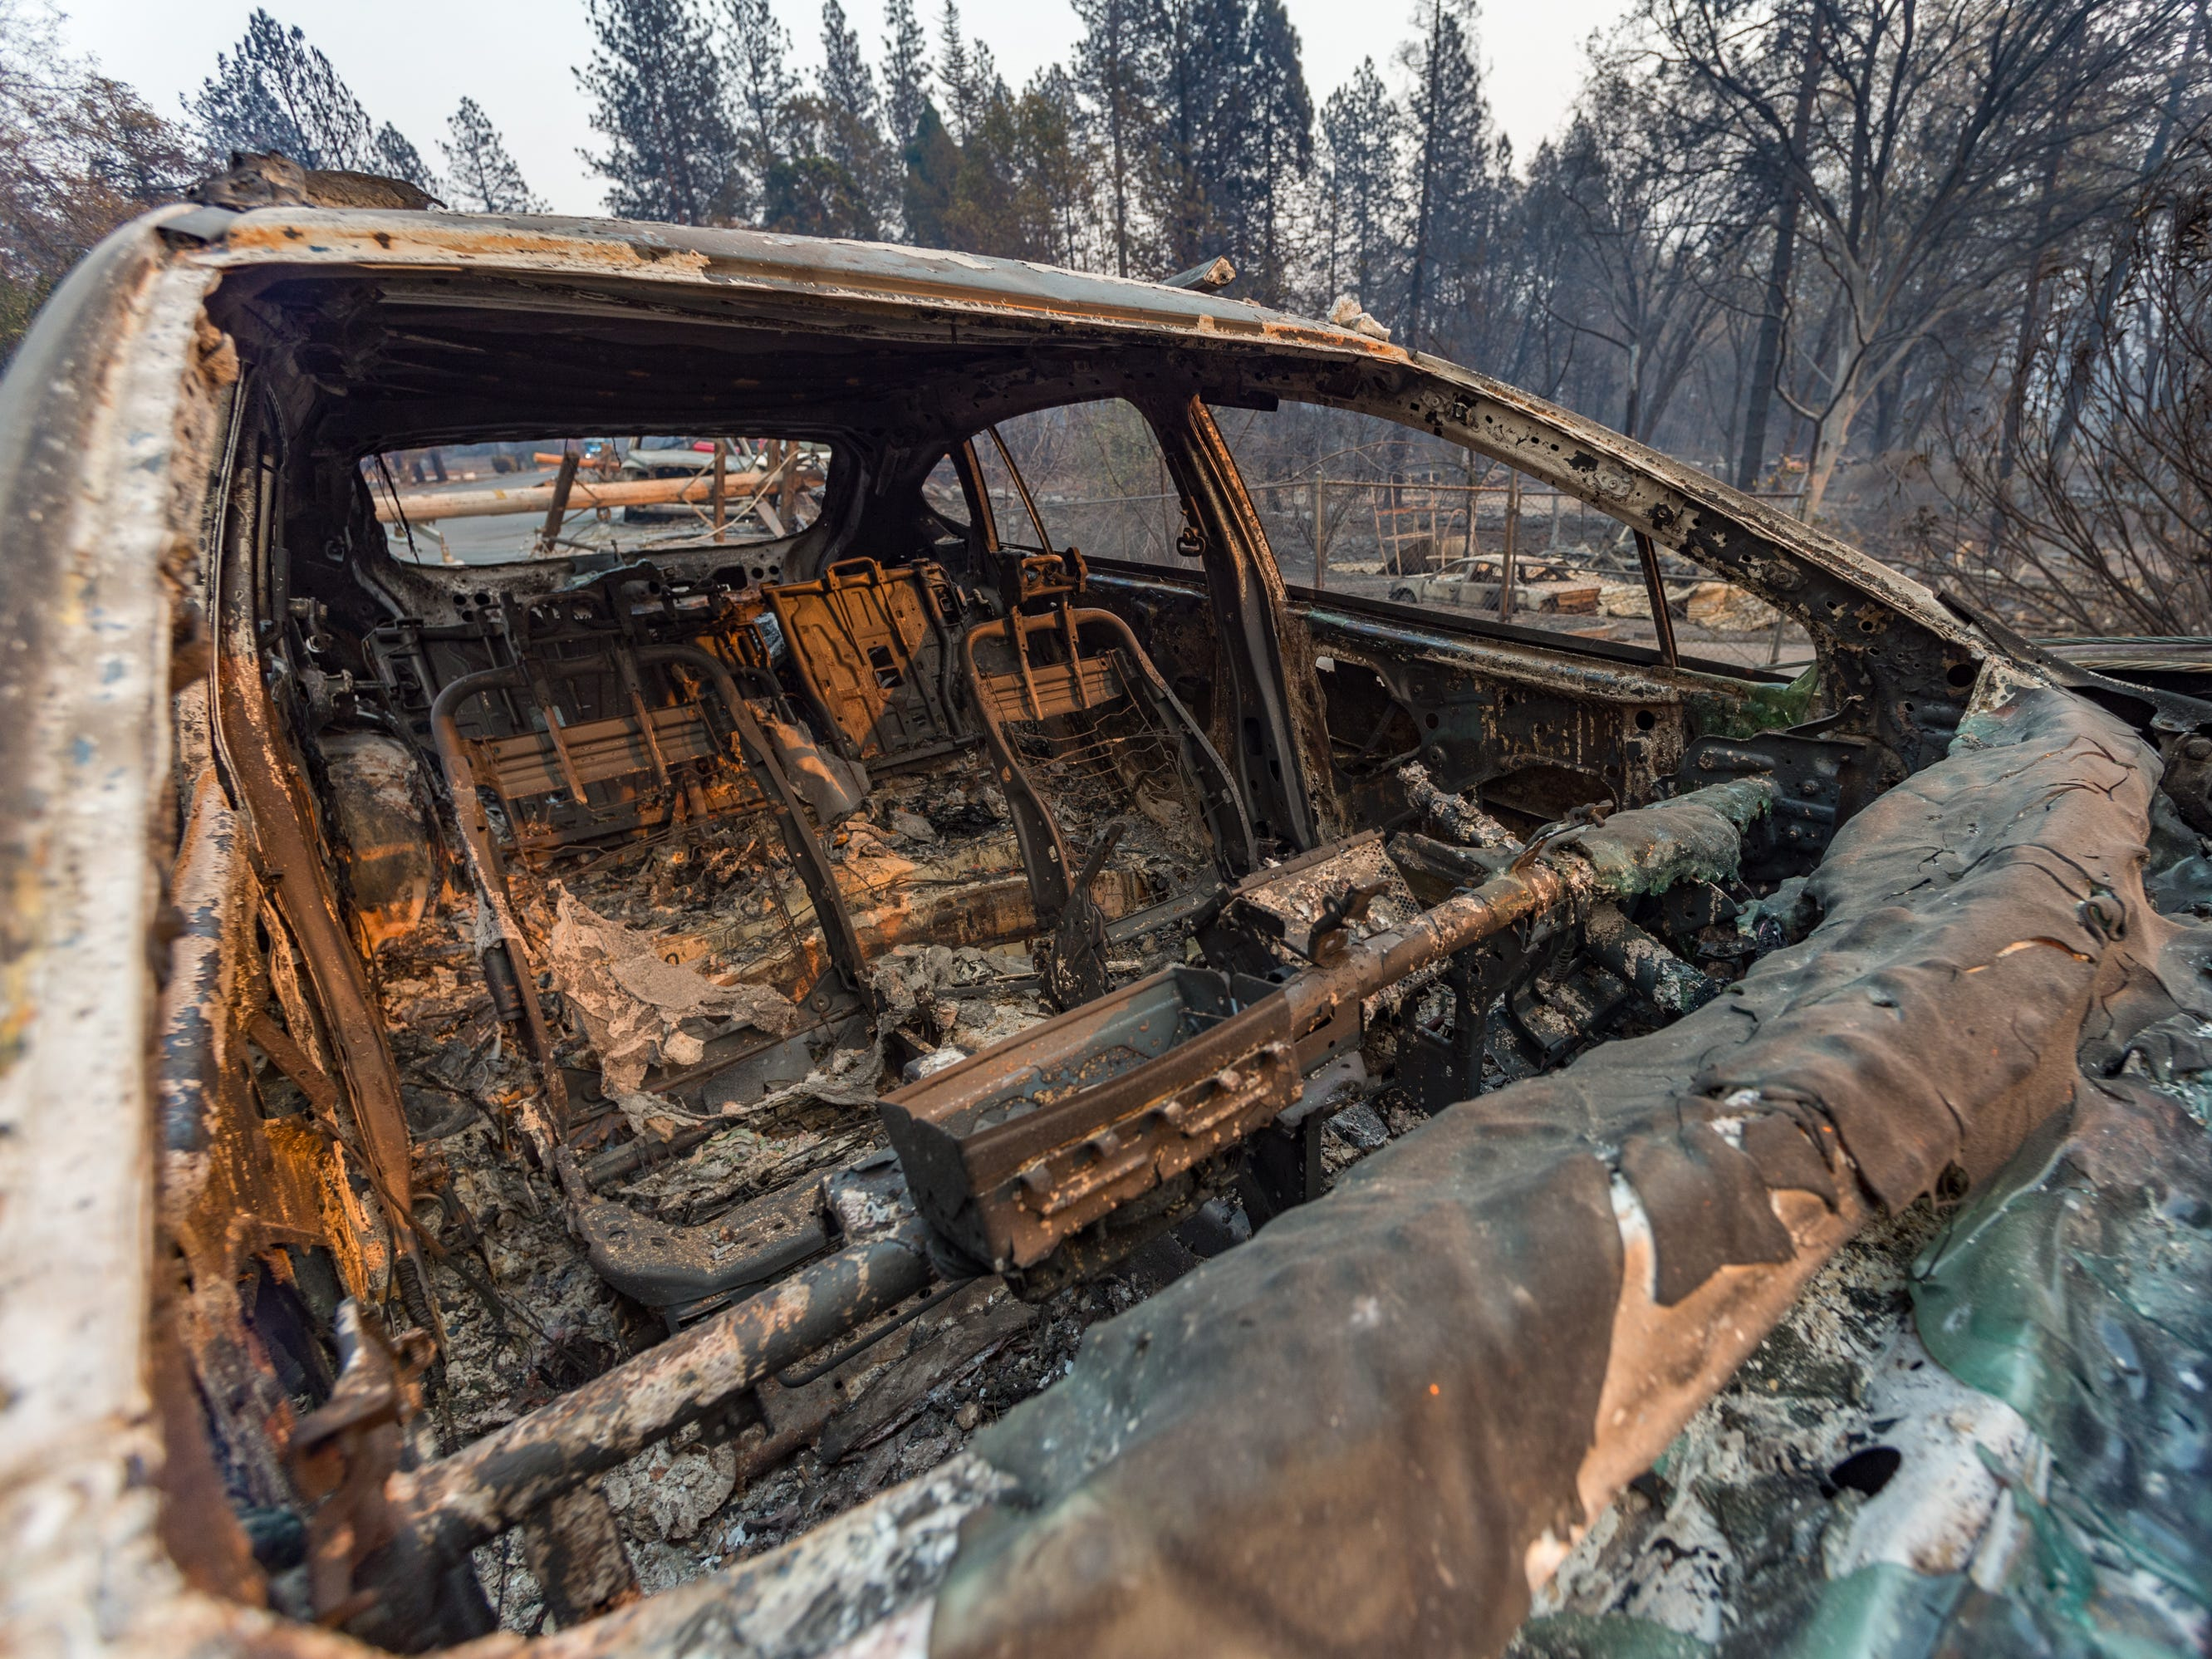 The Camp Fire swept through Paradise, CA destroying more than 6,500 structures and the death toll has risen to 23.  November 11, 2018.